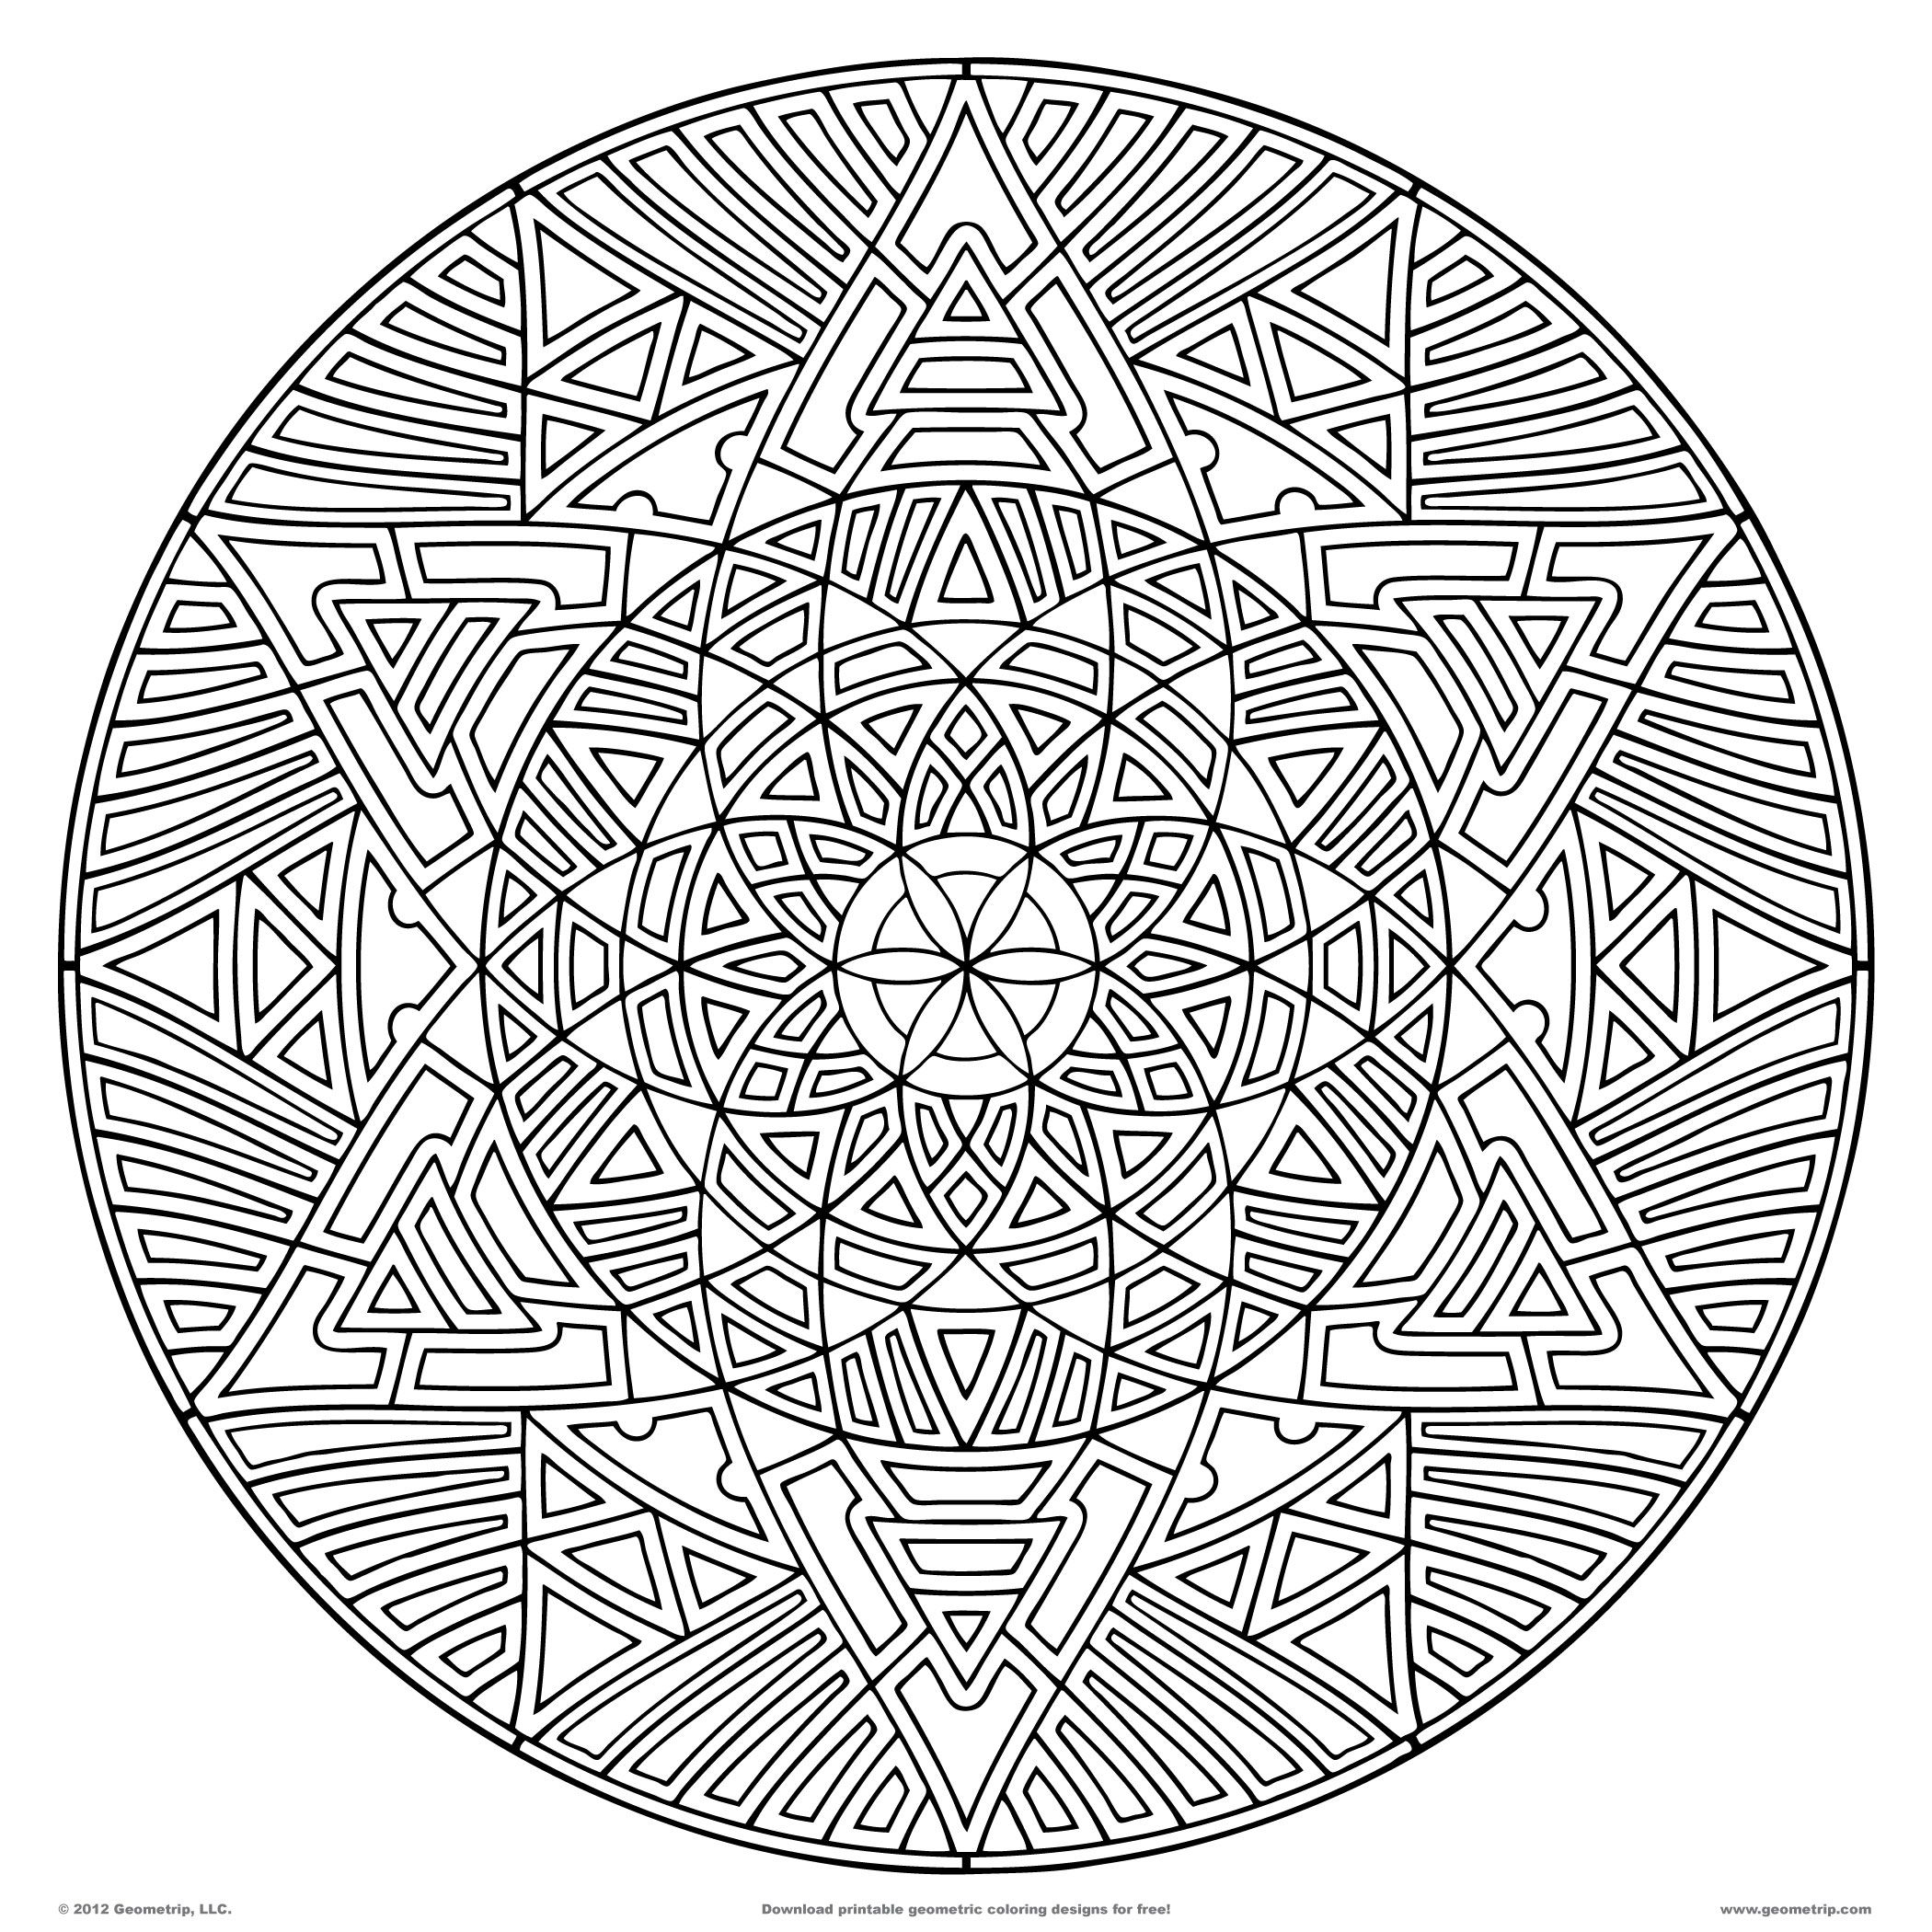 Spectacular Intricate Mandala Coloring Pages Incredible